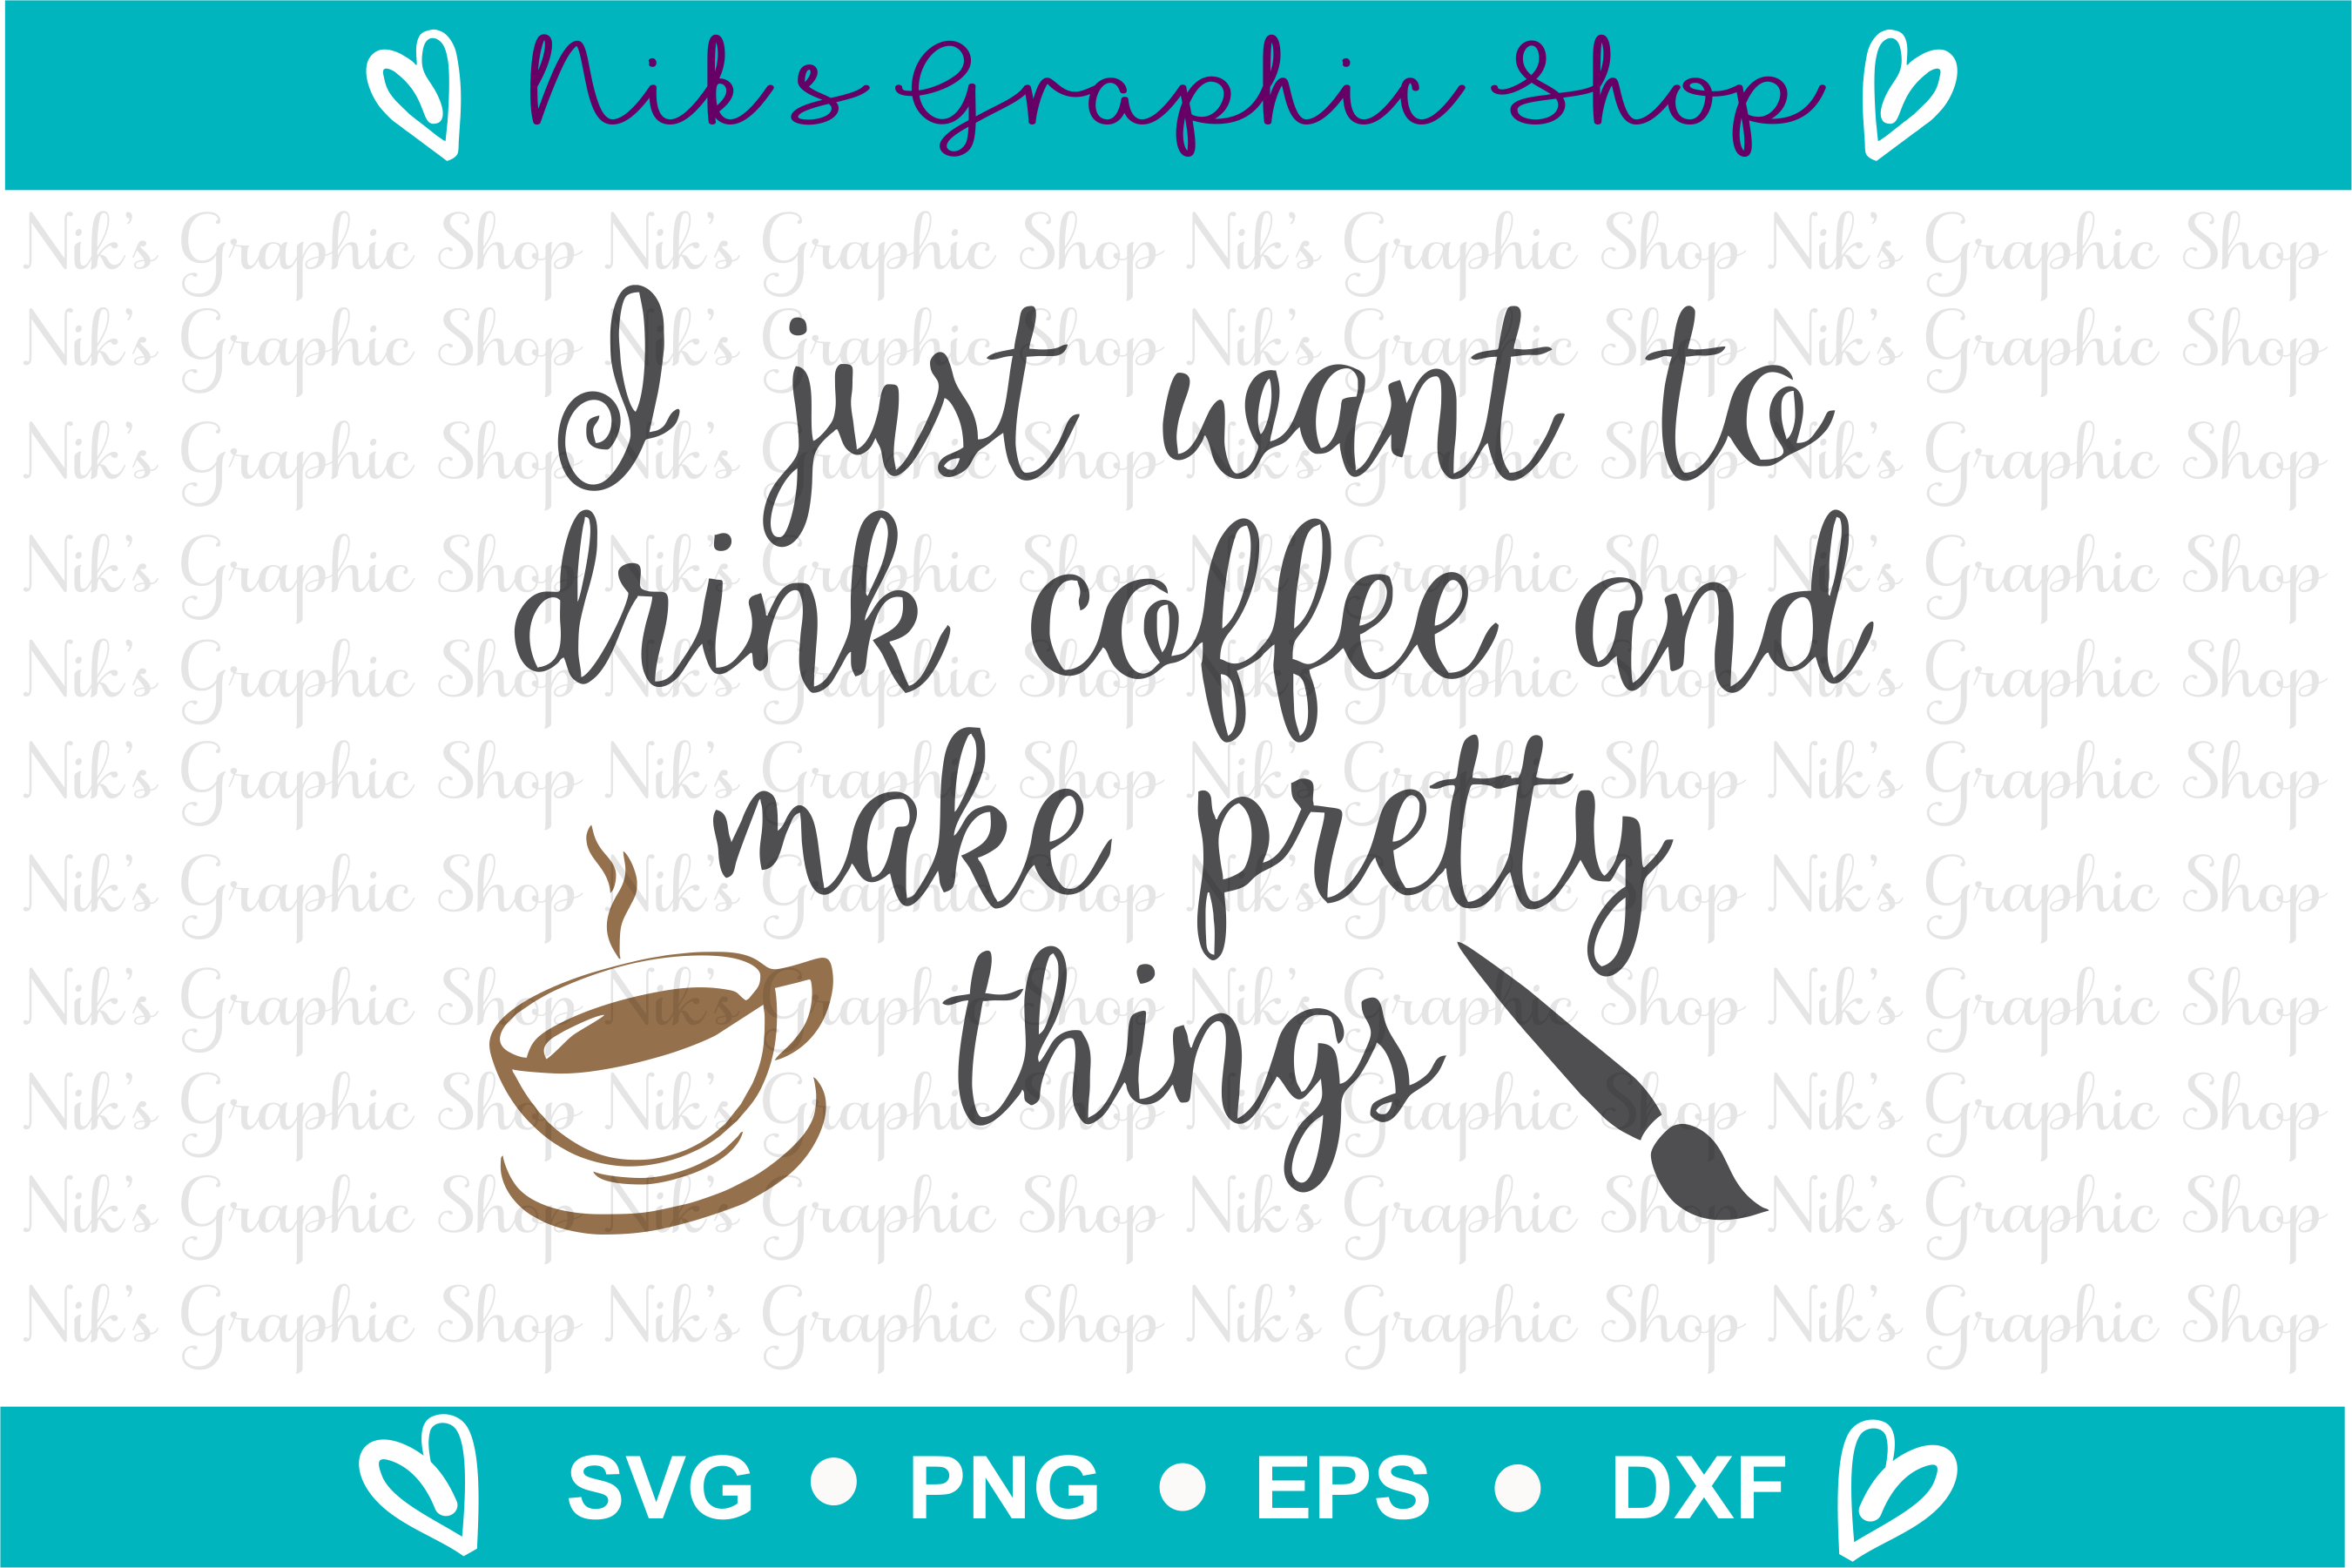 Coffee Svg, Pretty Things Svg, Coffee Cut Files, Drink Svg example image 2